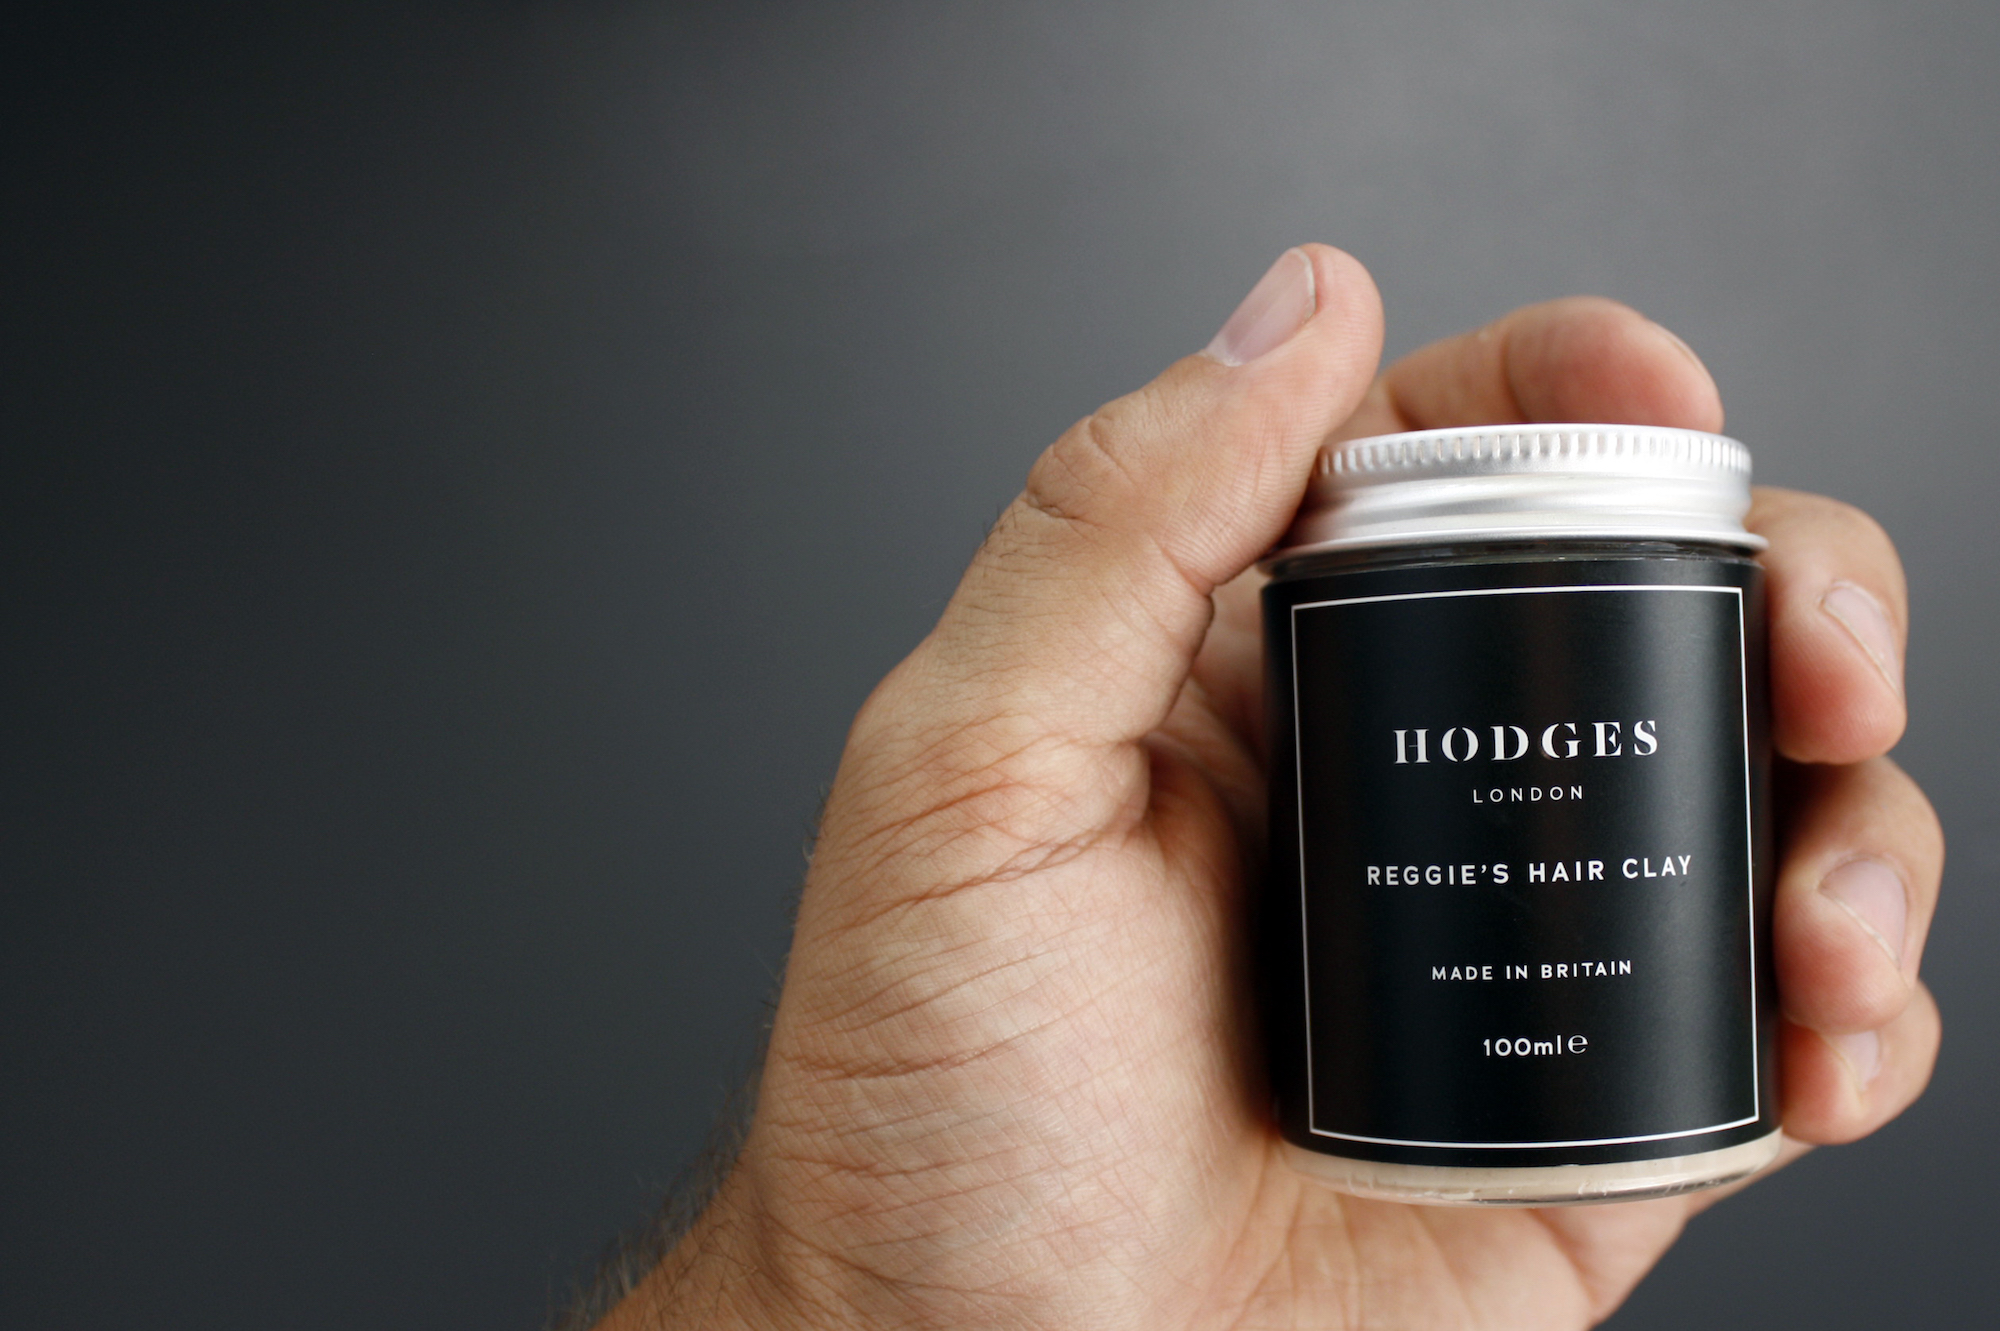 Reggie's Hair Clay by Hodges is made in Britain from using a high-performance, natural formula.